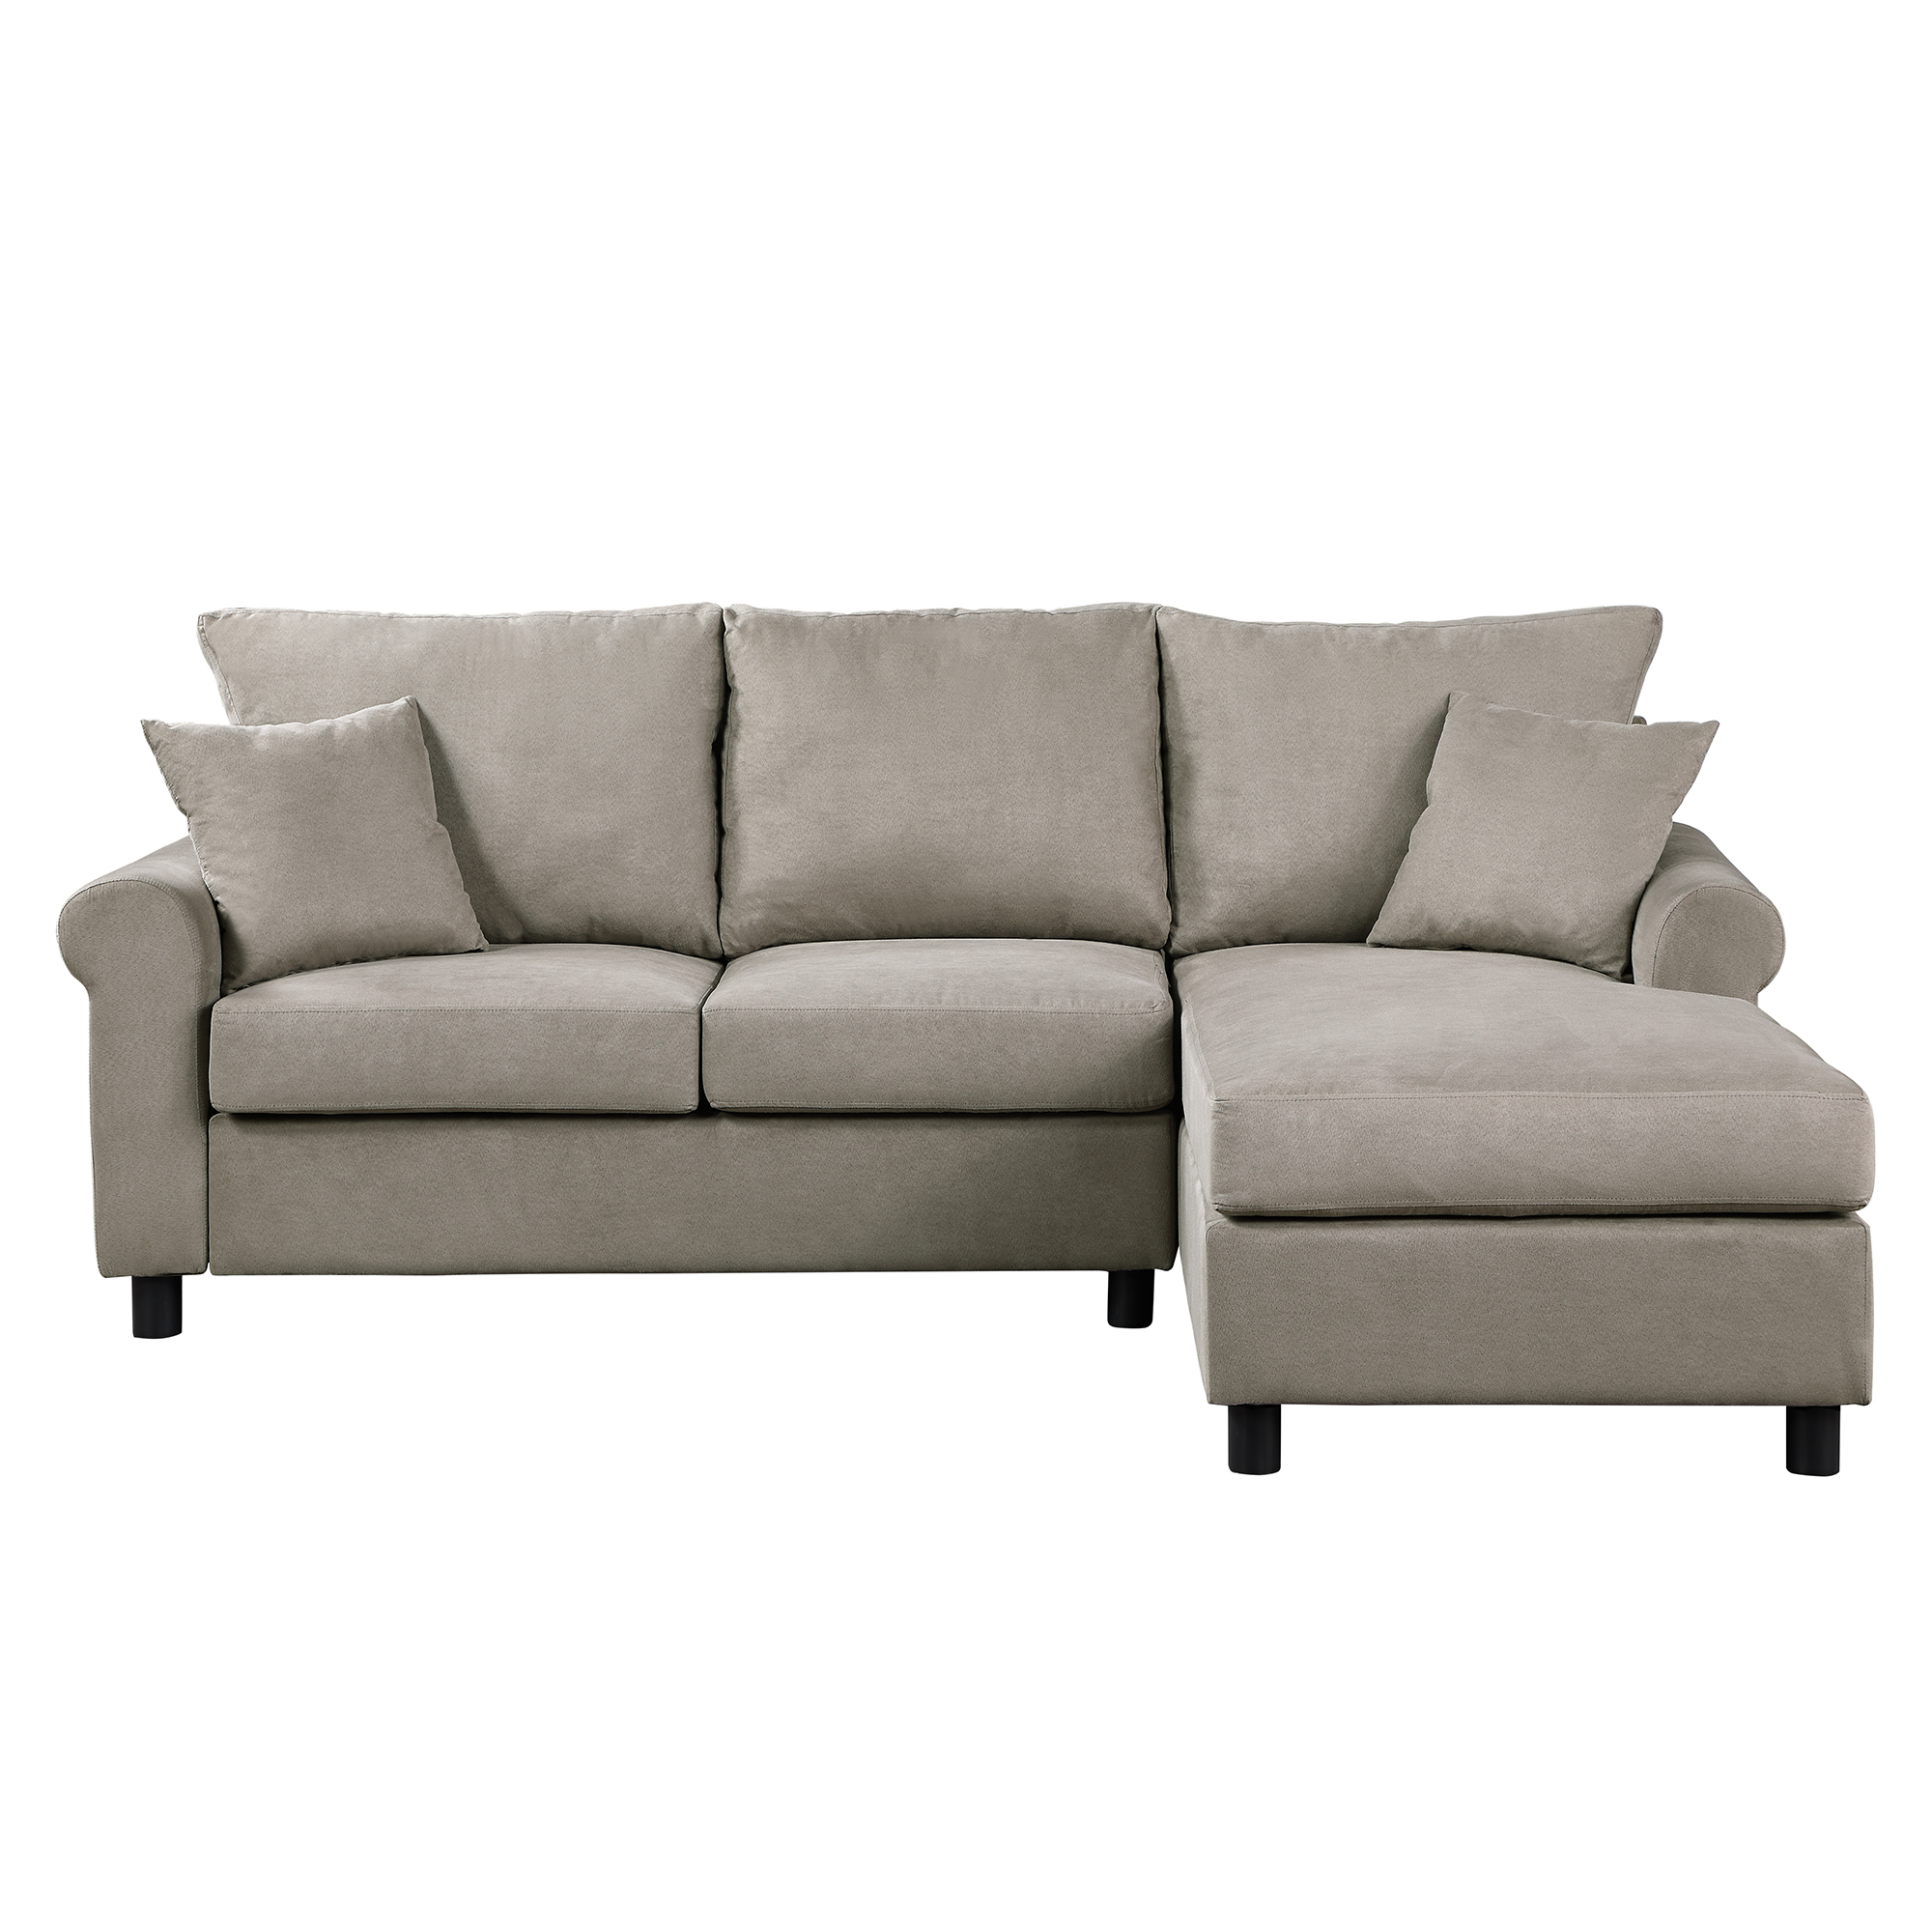 Best And Newest Sectional Sofa, Segmart 35'' X 85'' X 61'' Tufted With Regard To Clifton Reversible Sectional Sofas With Pillows (View 4 of 20)